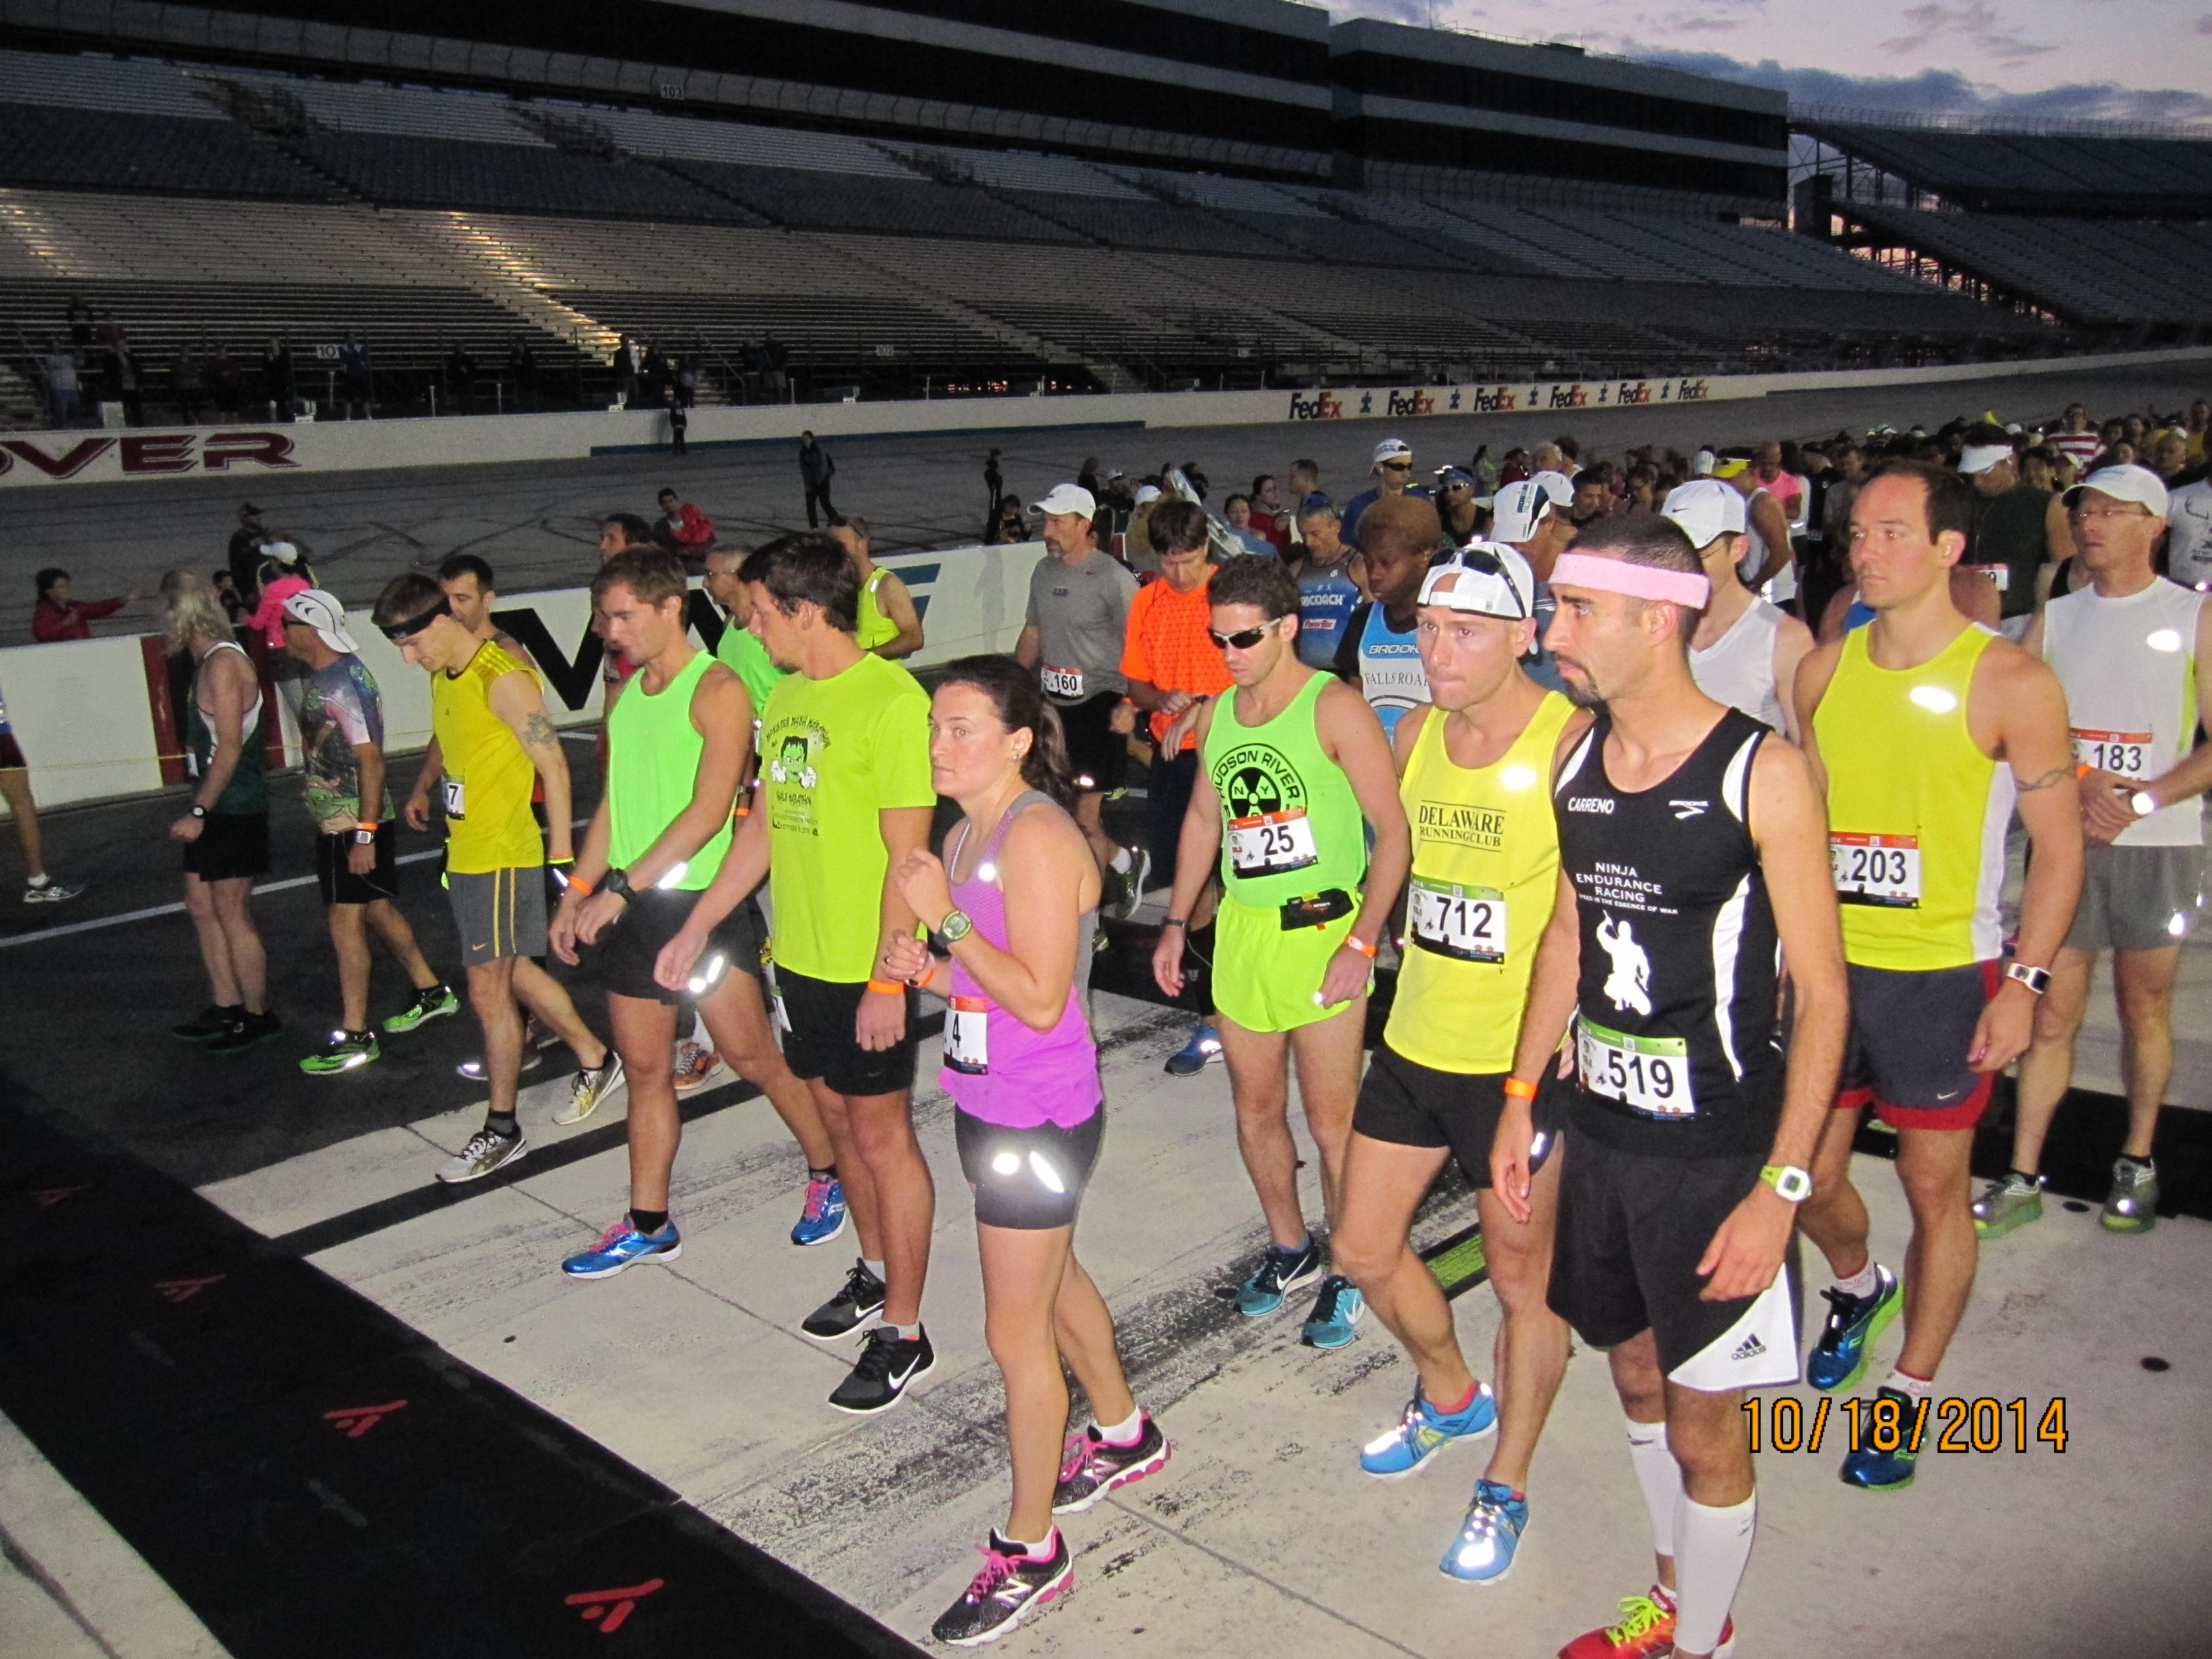 images.raceentry.com/infopages/monster-mash-marathon-and-half-marathon-benifiting-the-wounded-warrior-project-infopages-2221.jpg